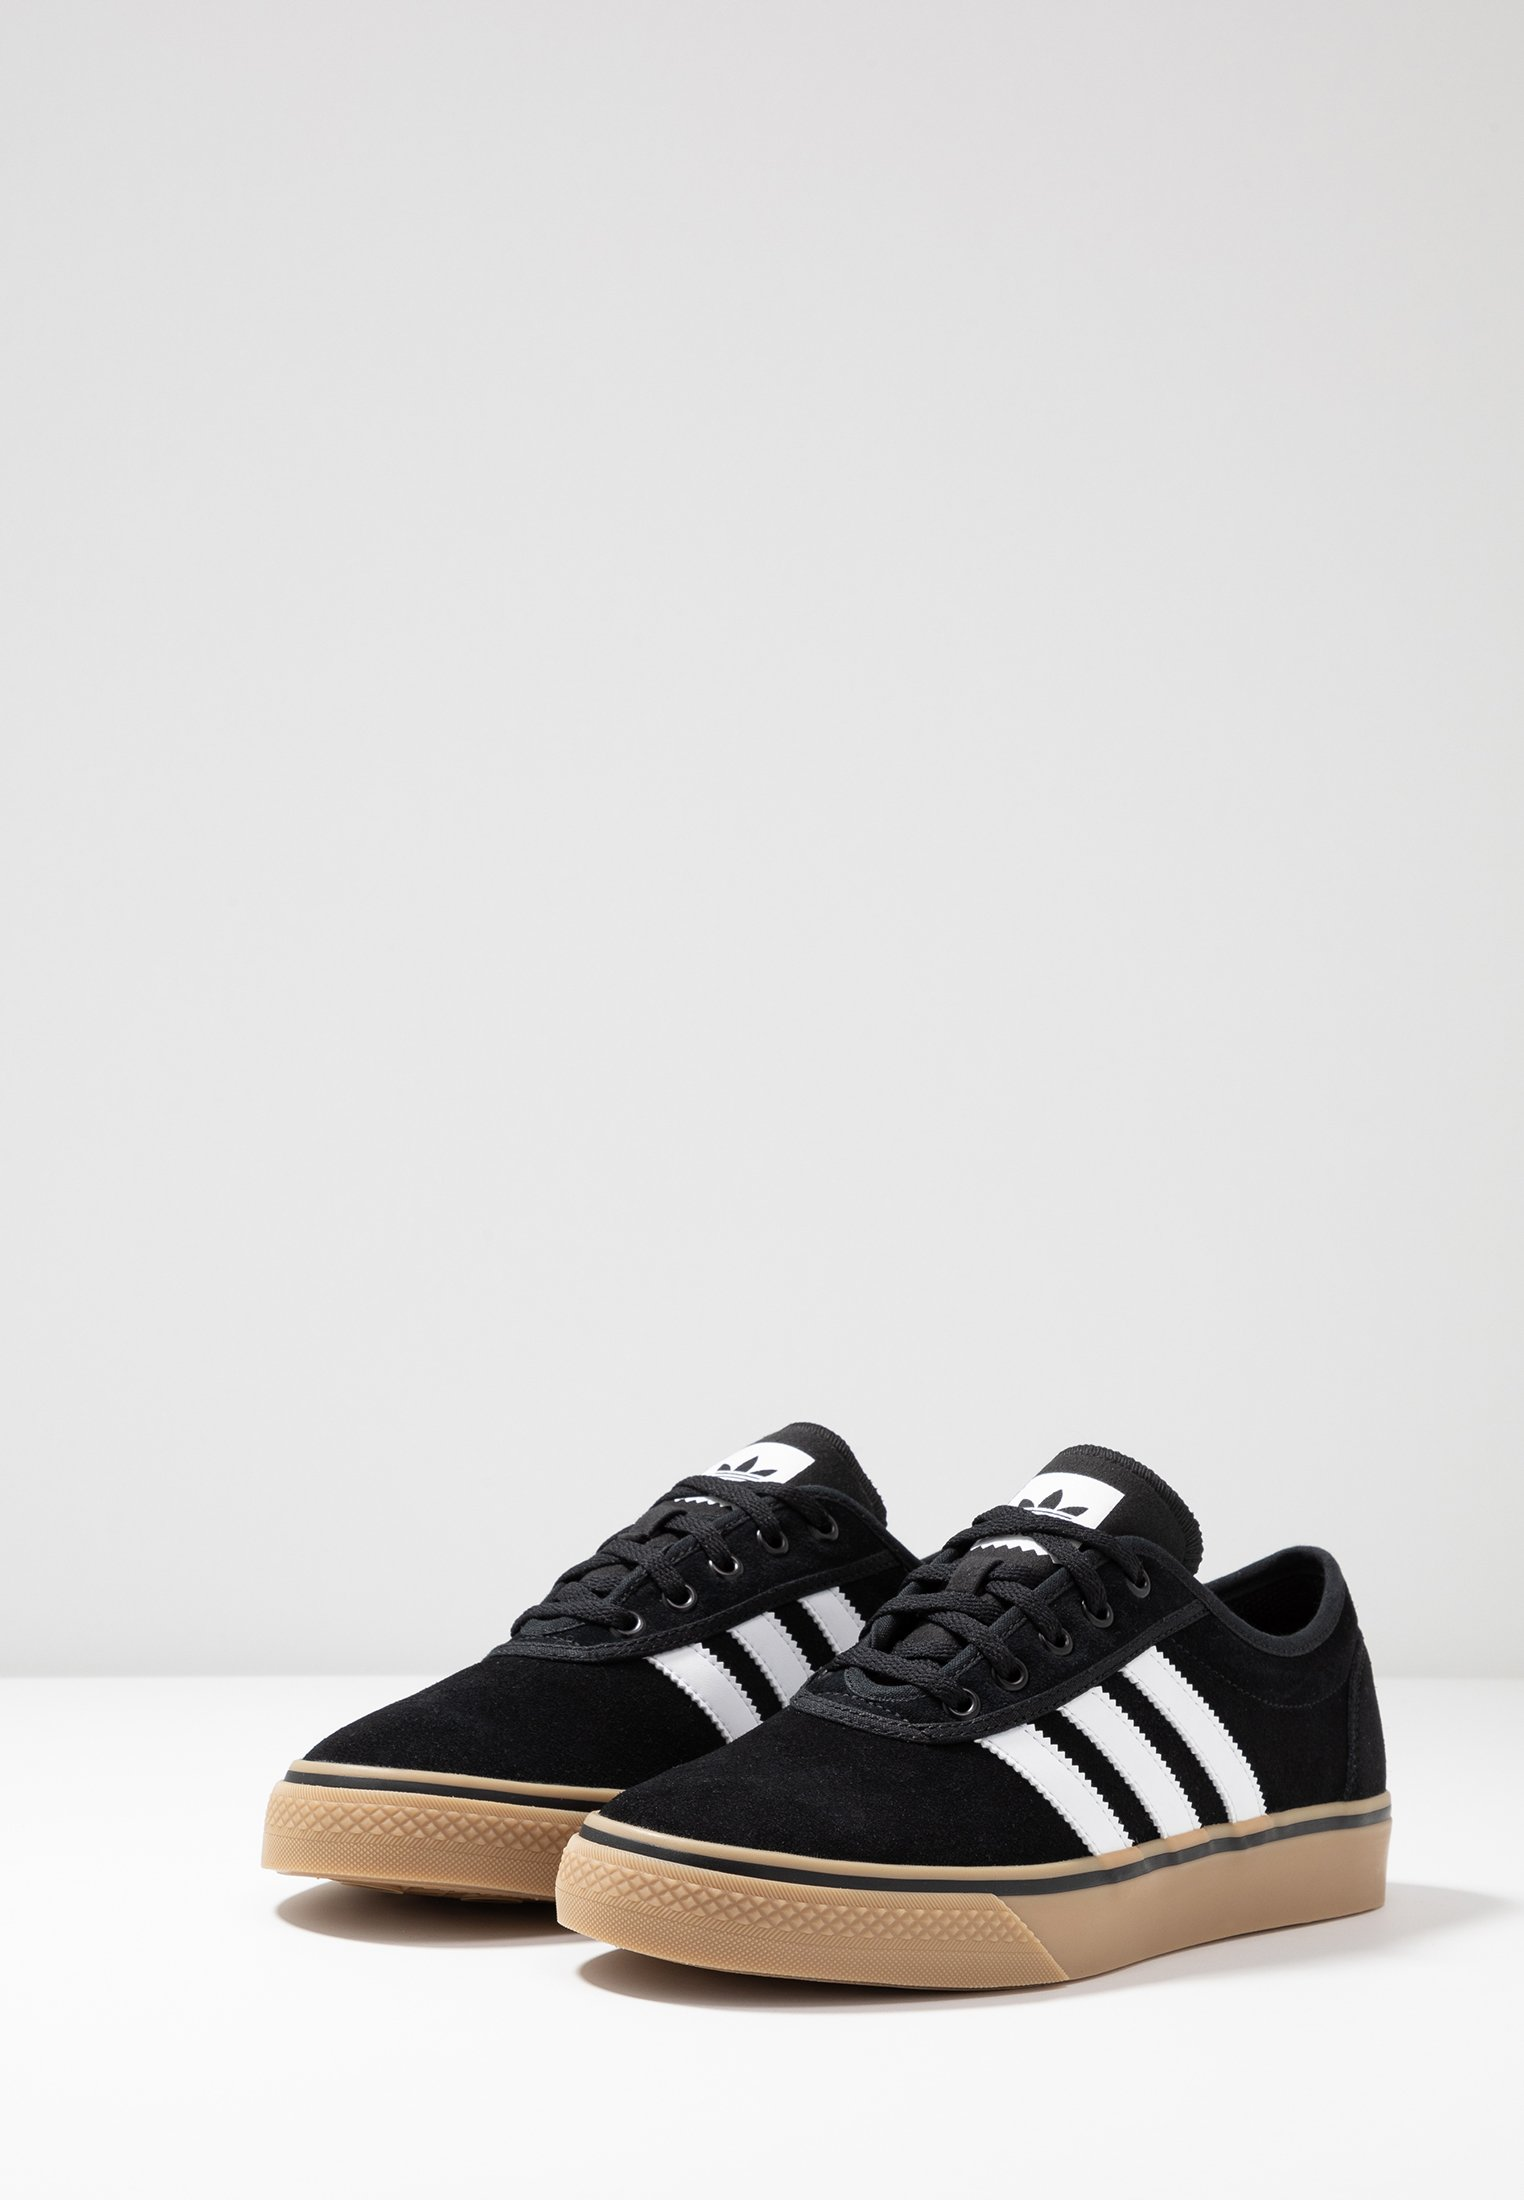 adidas Originals ADI-EASE VULCANIZED SKATEBOARD SHOES - Sneakers - core black/footwear white